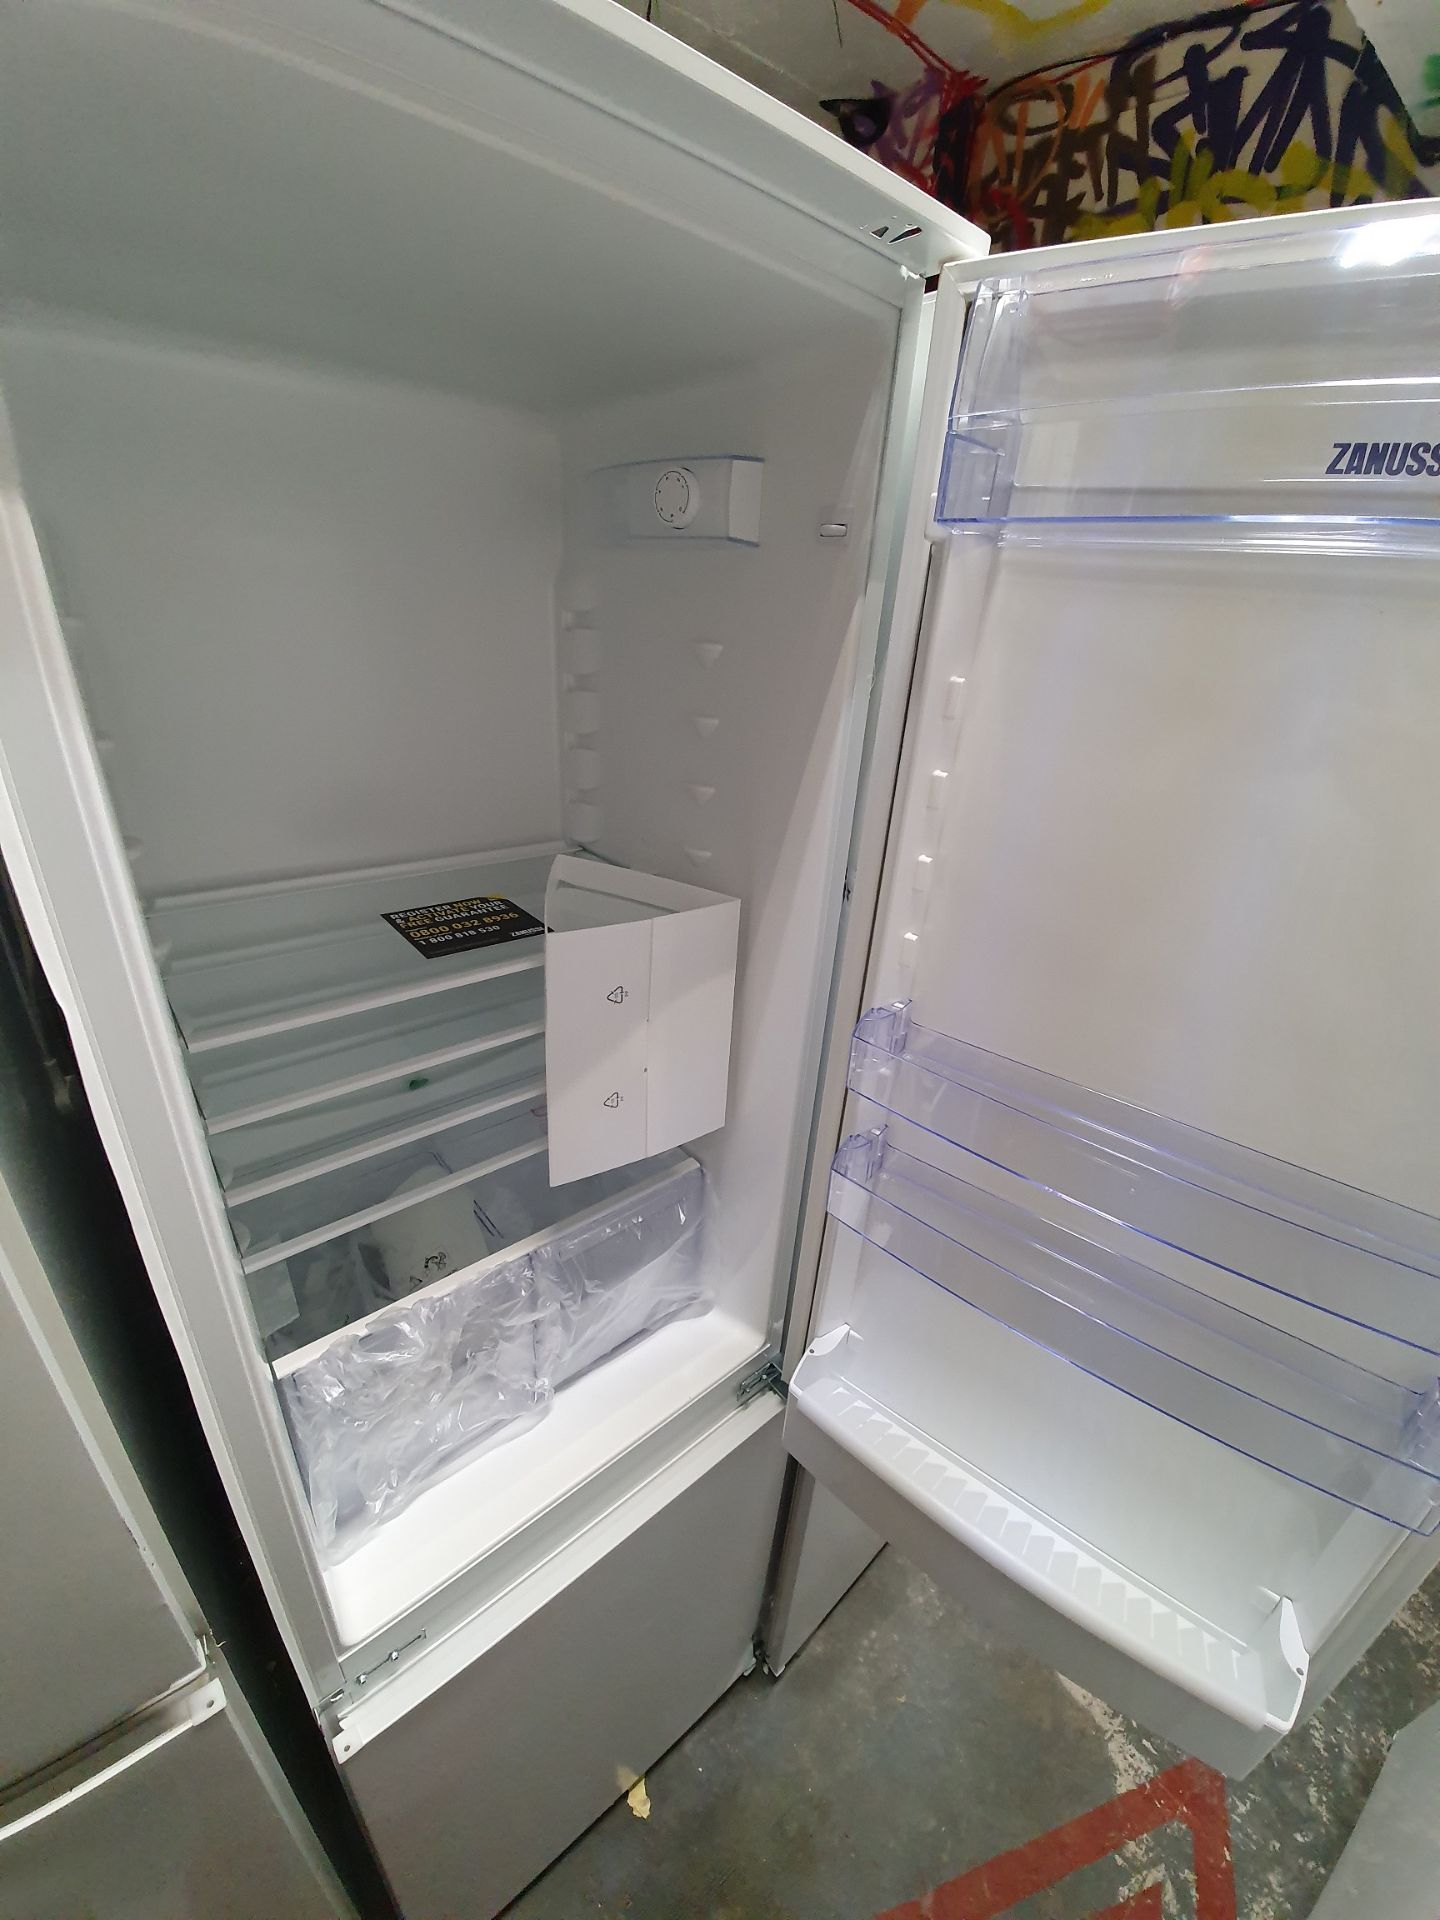 NEW/GRADED AND UNPACKAGED Zanussi ZBB28441SV Integrated 70/30 Fridge Freezer (Brand new slight - Image 9 of 14